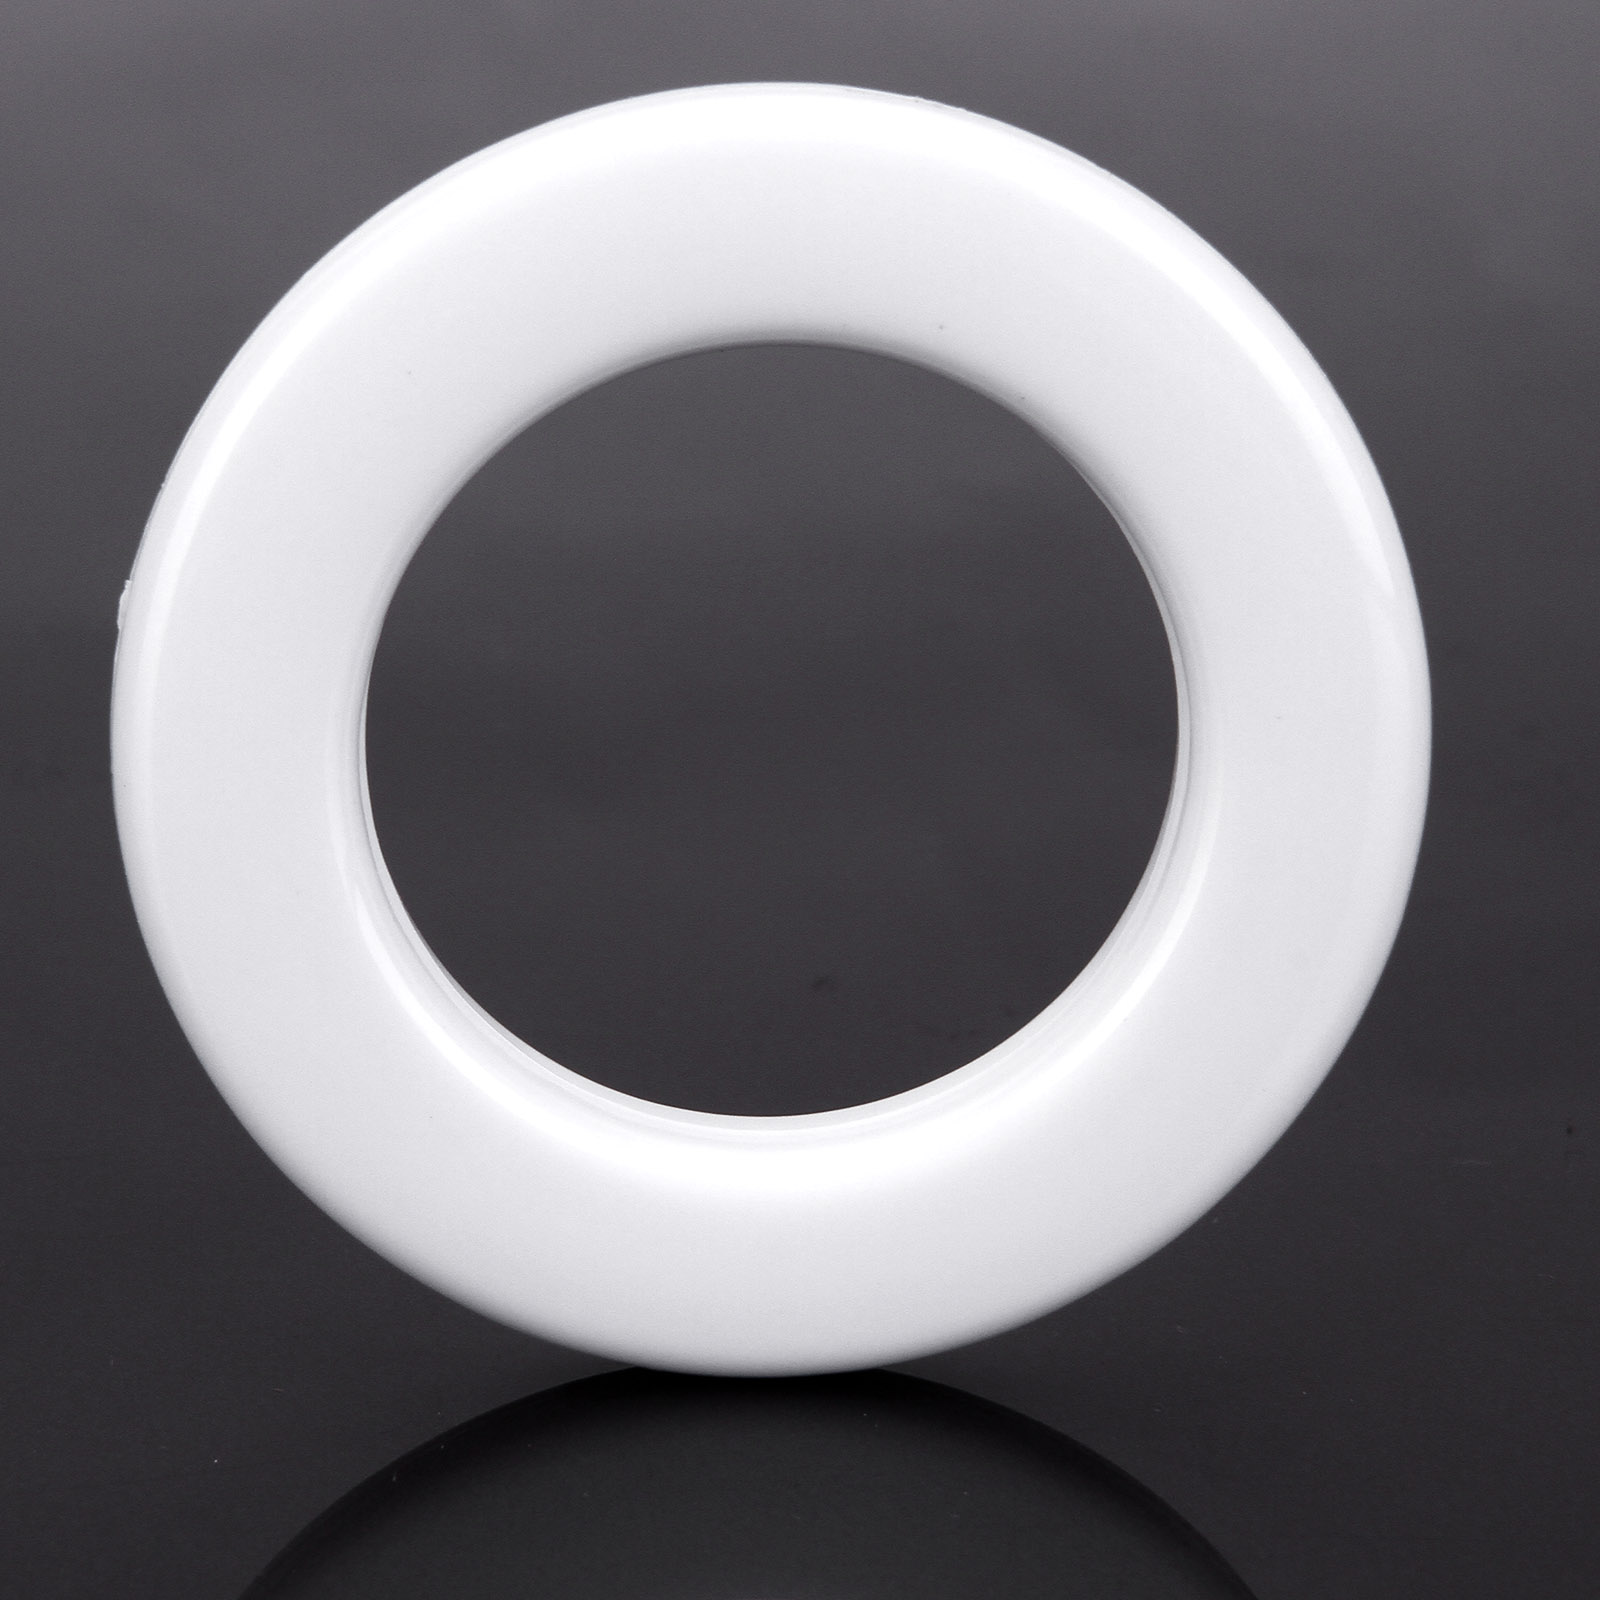 20pcs Round Plastic Ring For Eyelet Curtain Circle Slide